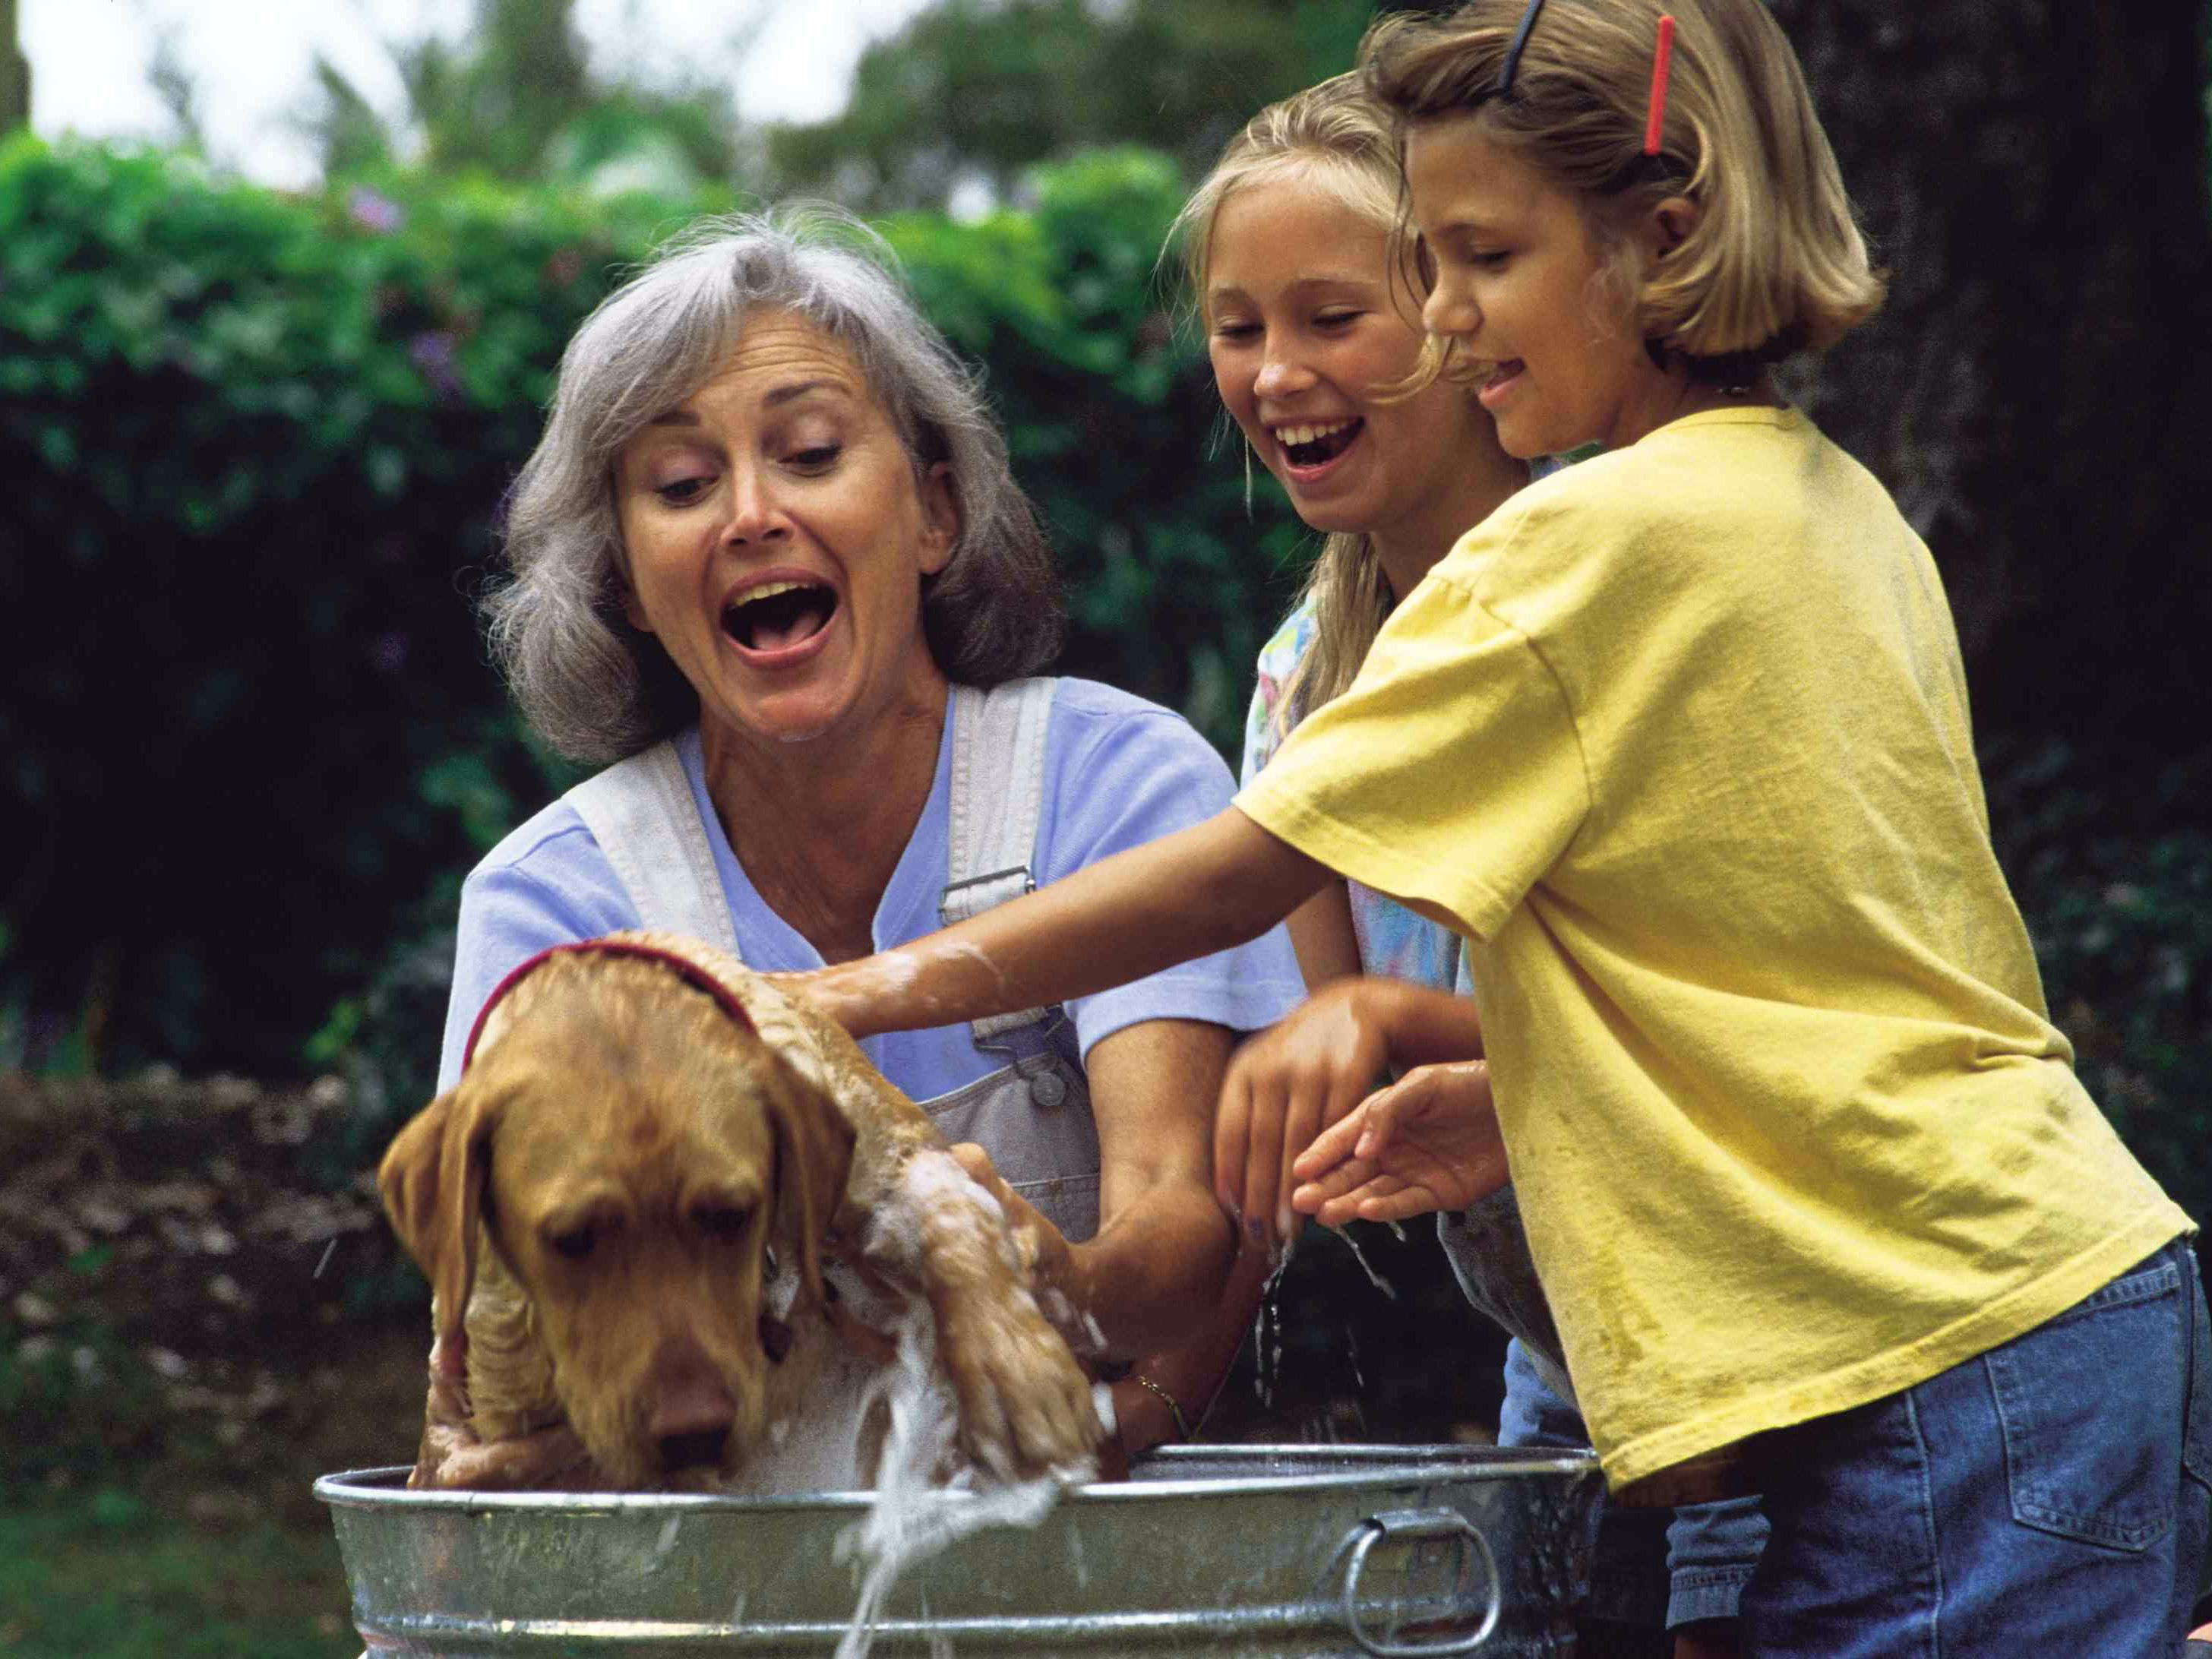 Pet Problems and Solutions for Grandparents